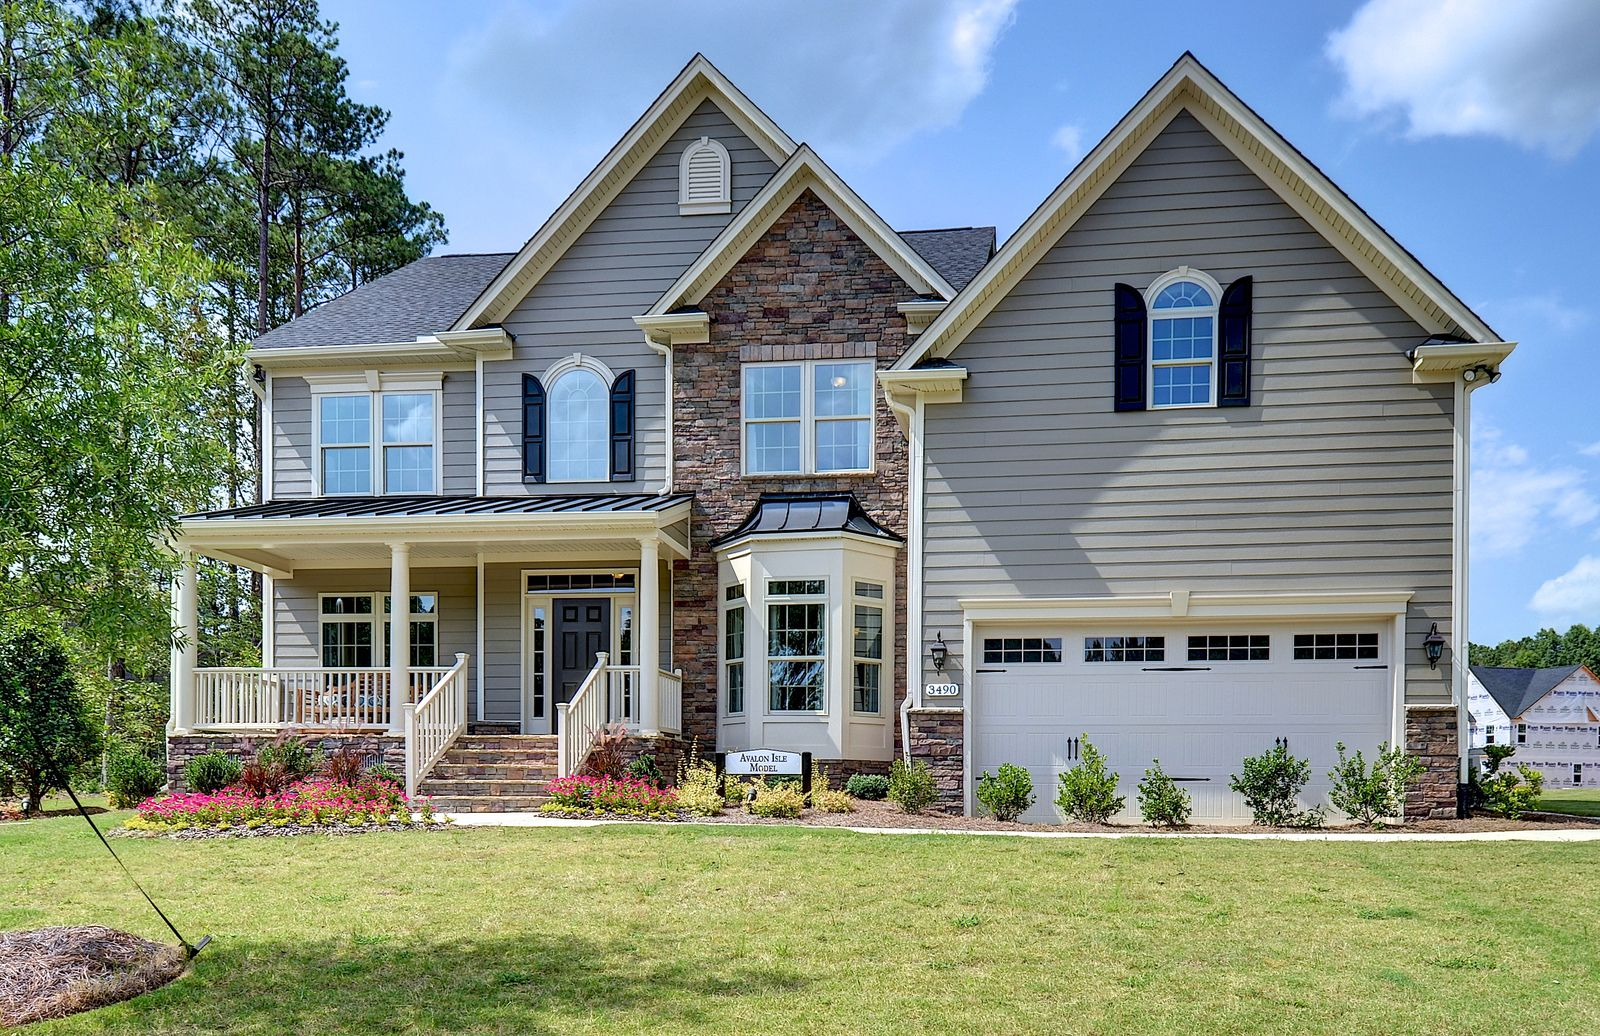 Single Family for Active at Jordan Pointe - Avalon Isle 3490 Regent Branch Drive New Hill, North Carolina 27562 United States